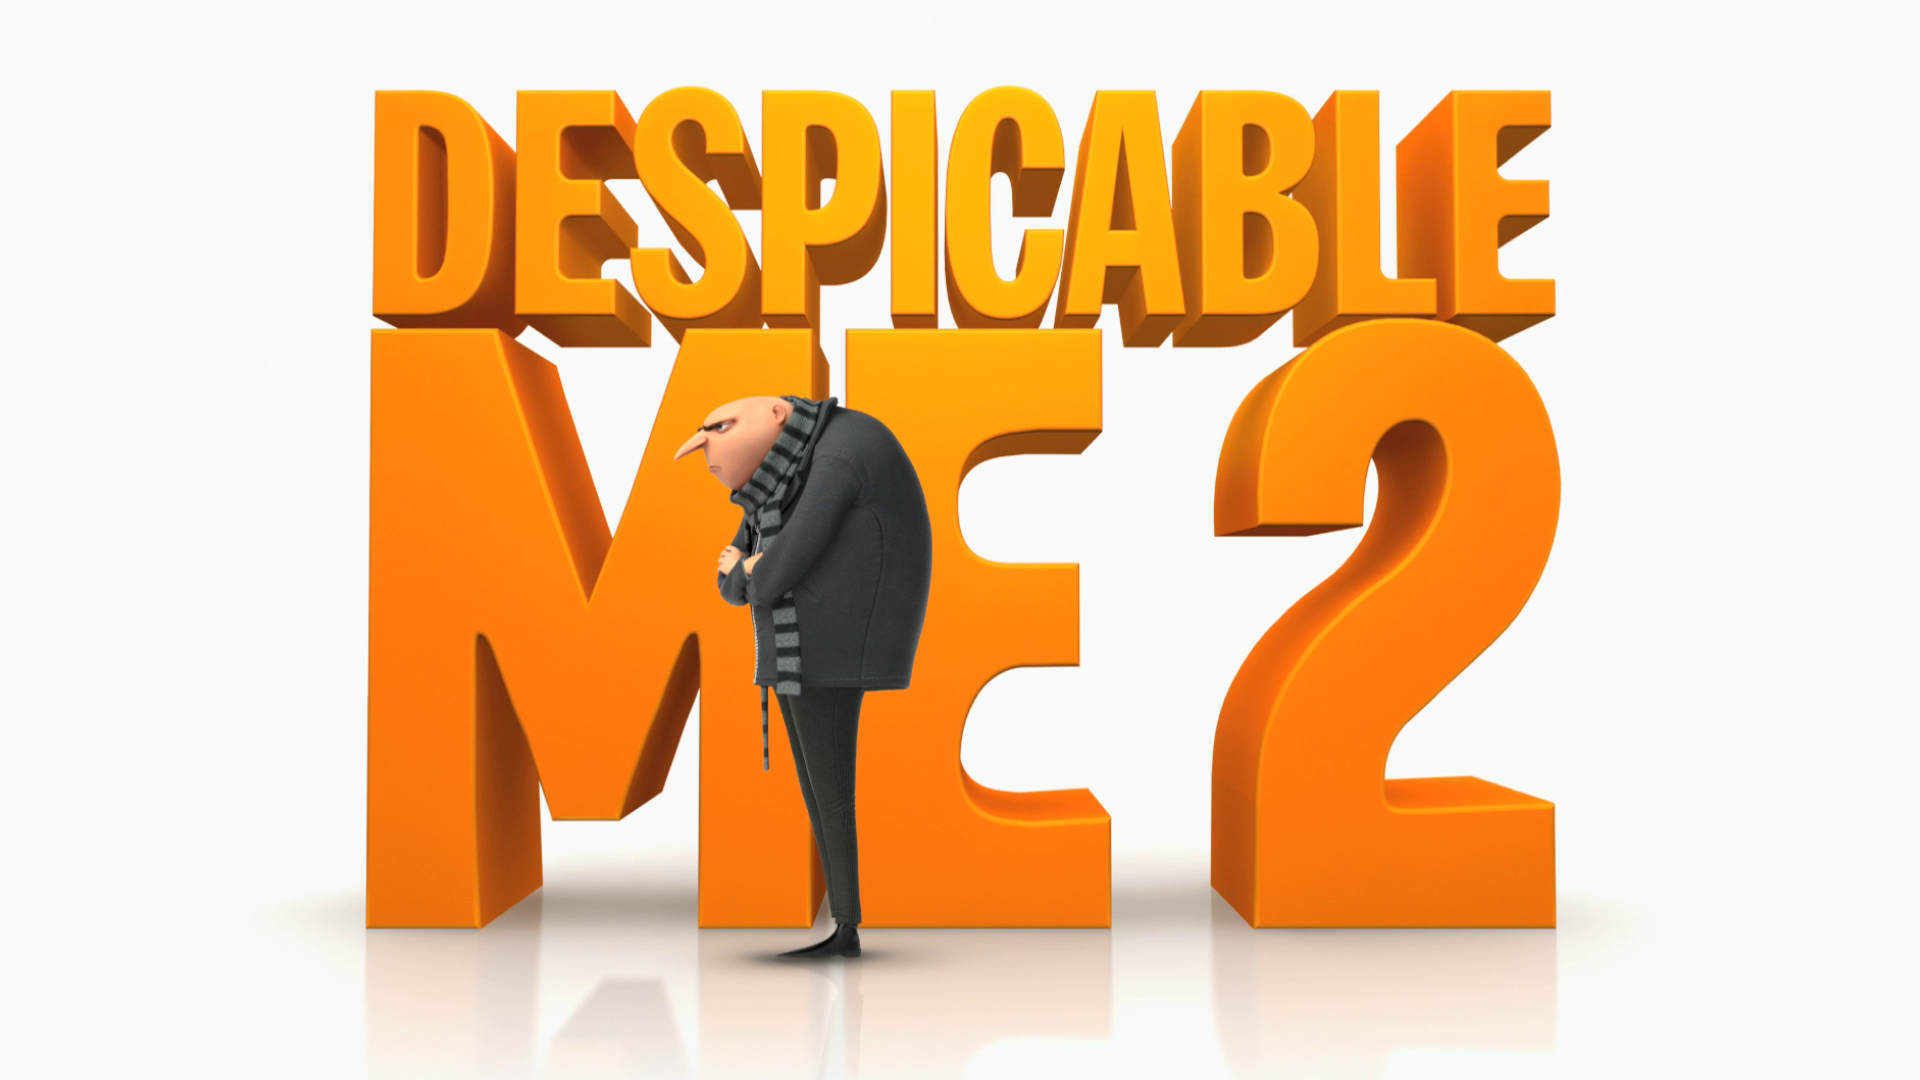 Happy (from despicable me 2 )